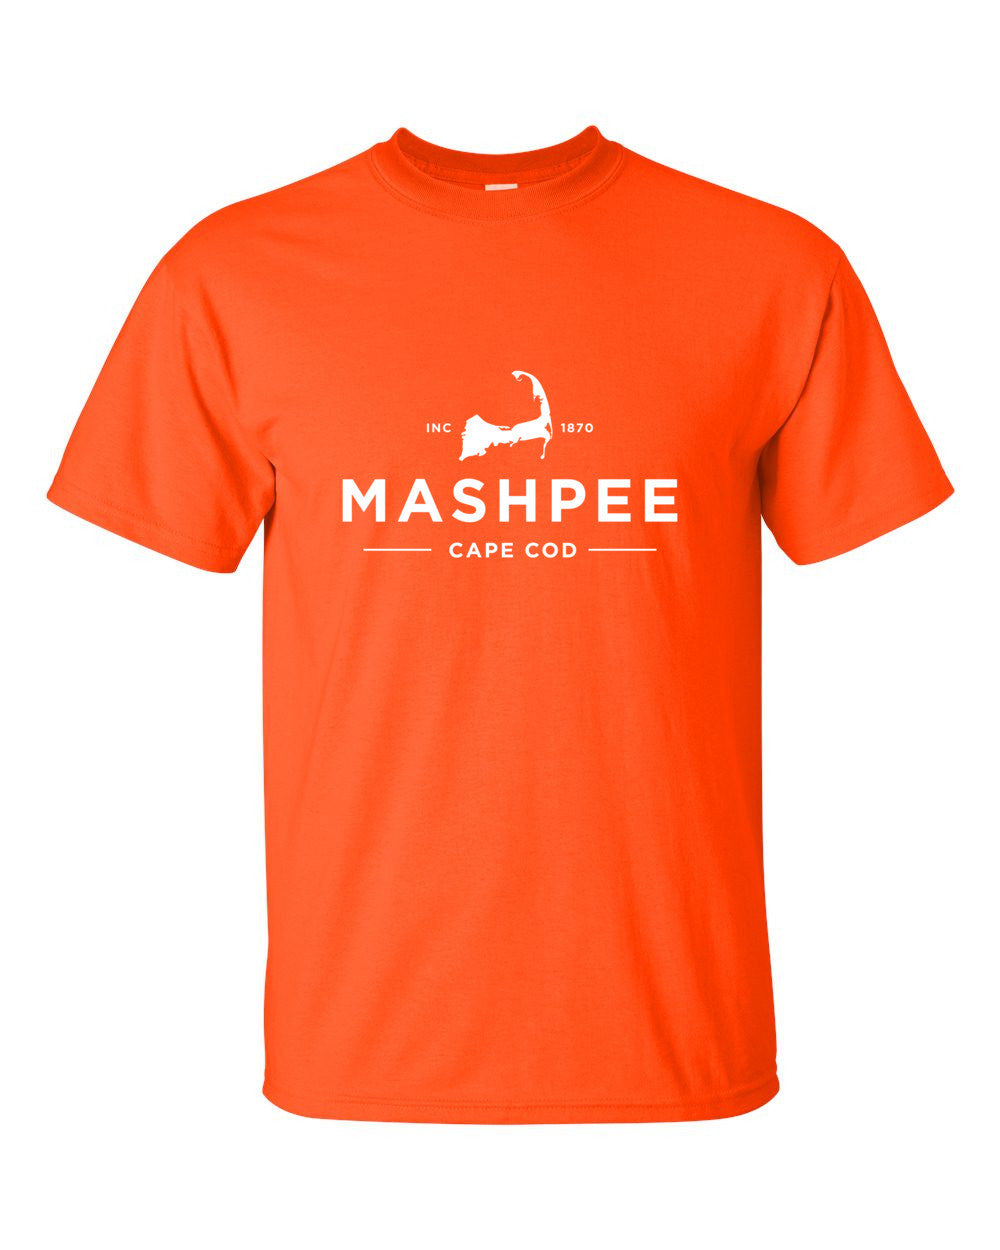 Mashpee Cape Cod Short sleeve t-shirt